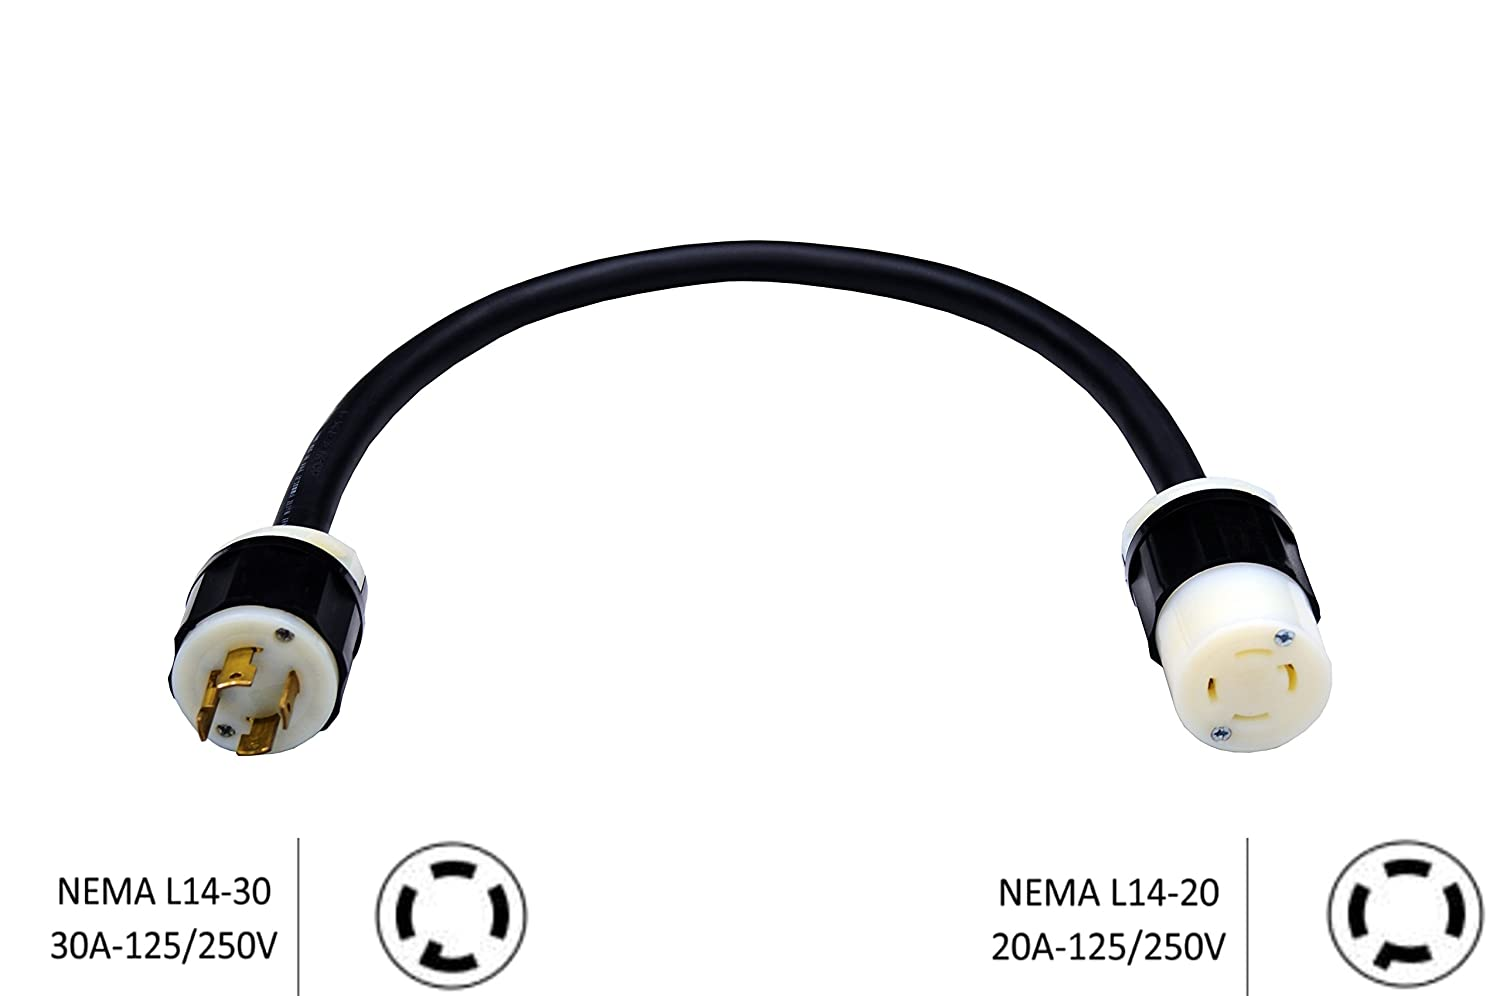 NEMA L14-30P to NEMA L14-20R Adapter - 30A 125/250V to 20A 125/250V, 10 AWG Heavy Duty Industrial Cable, CC-L1430P-L1420R (25 Ft.) Cords & Components